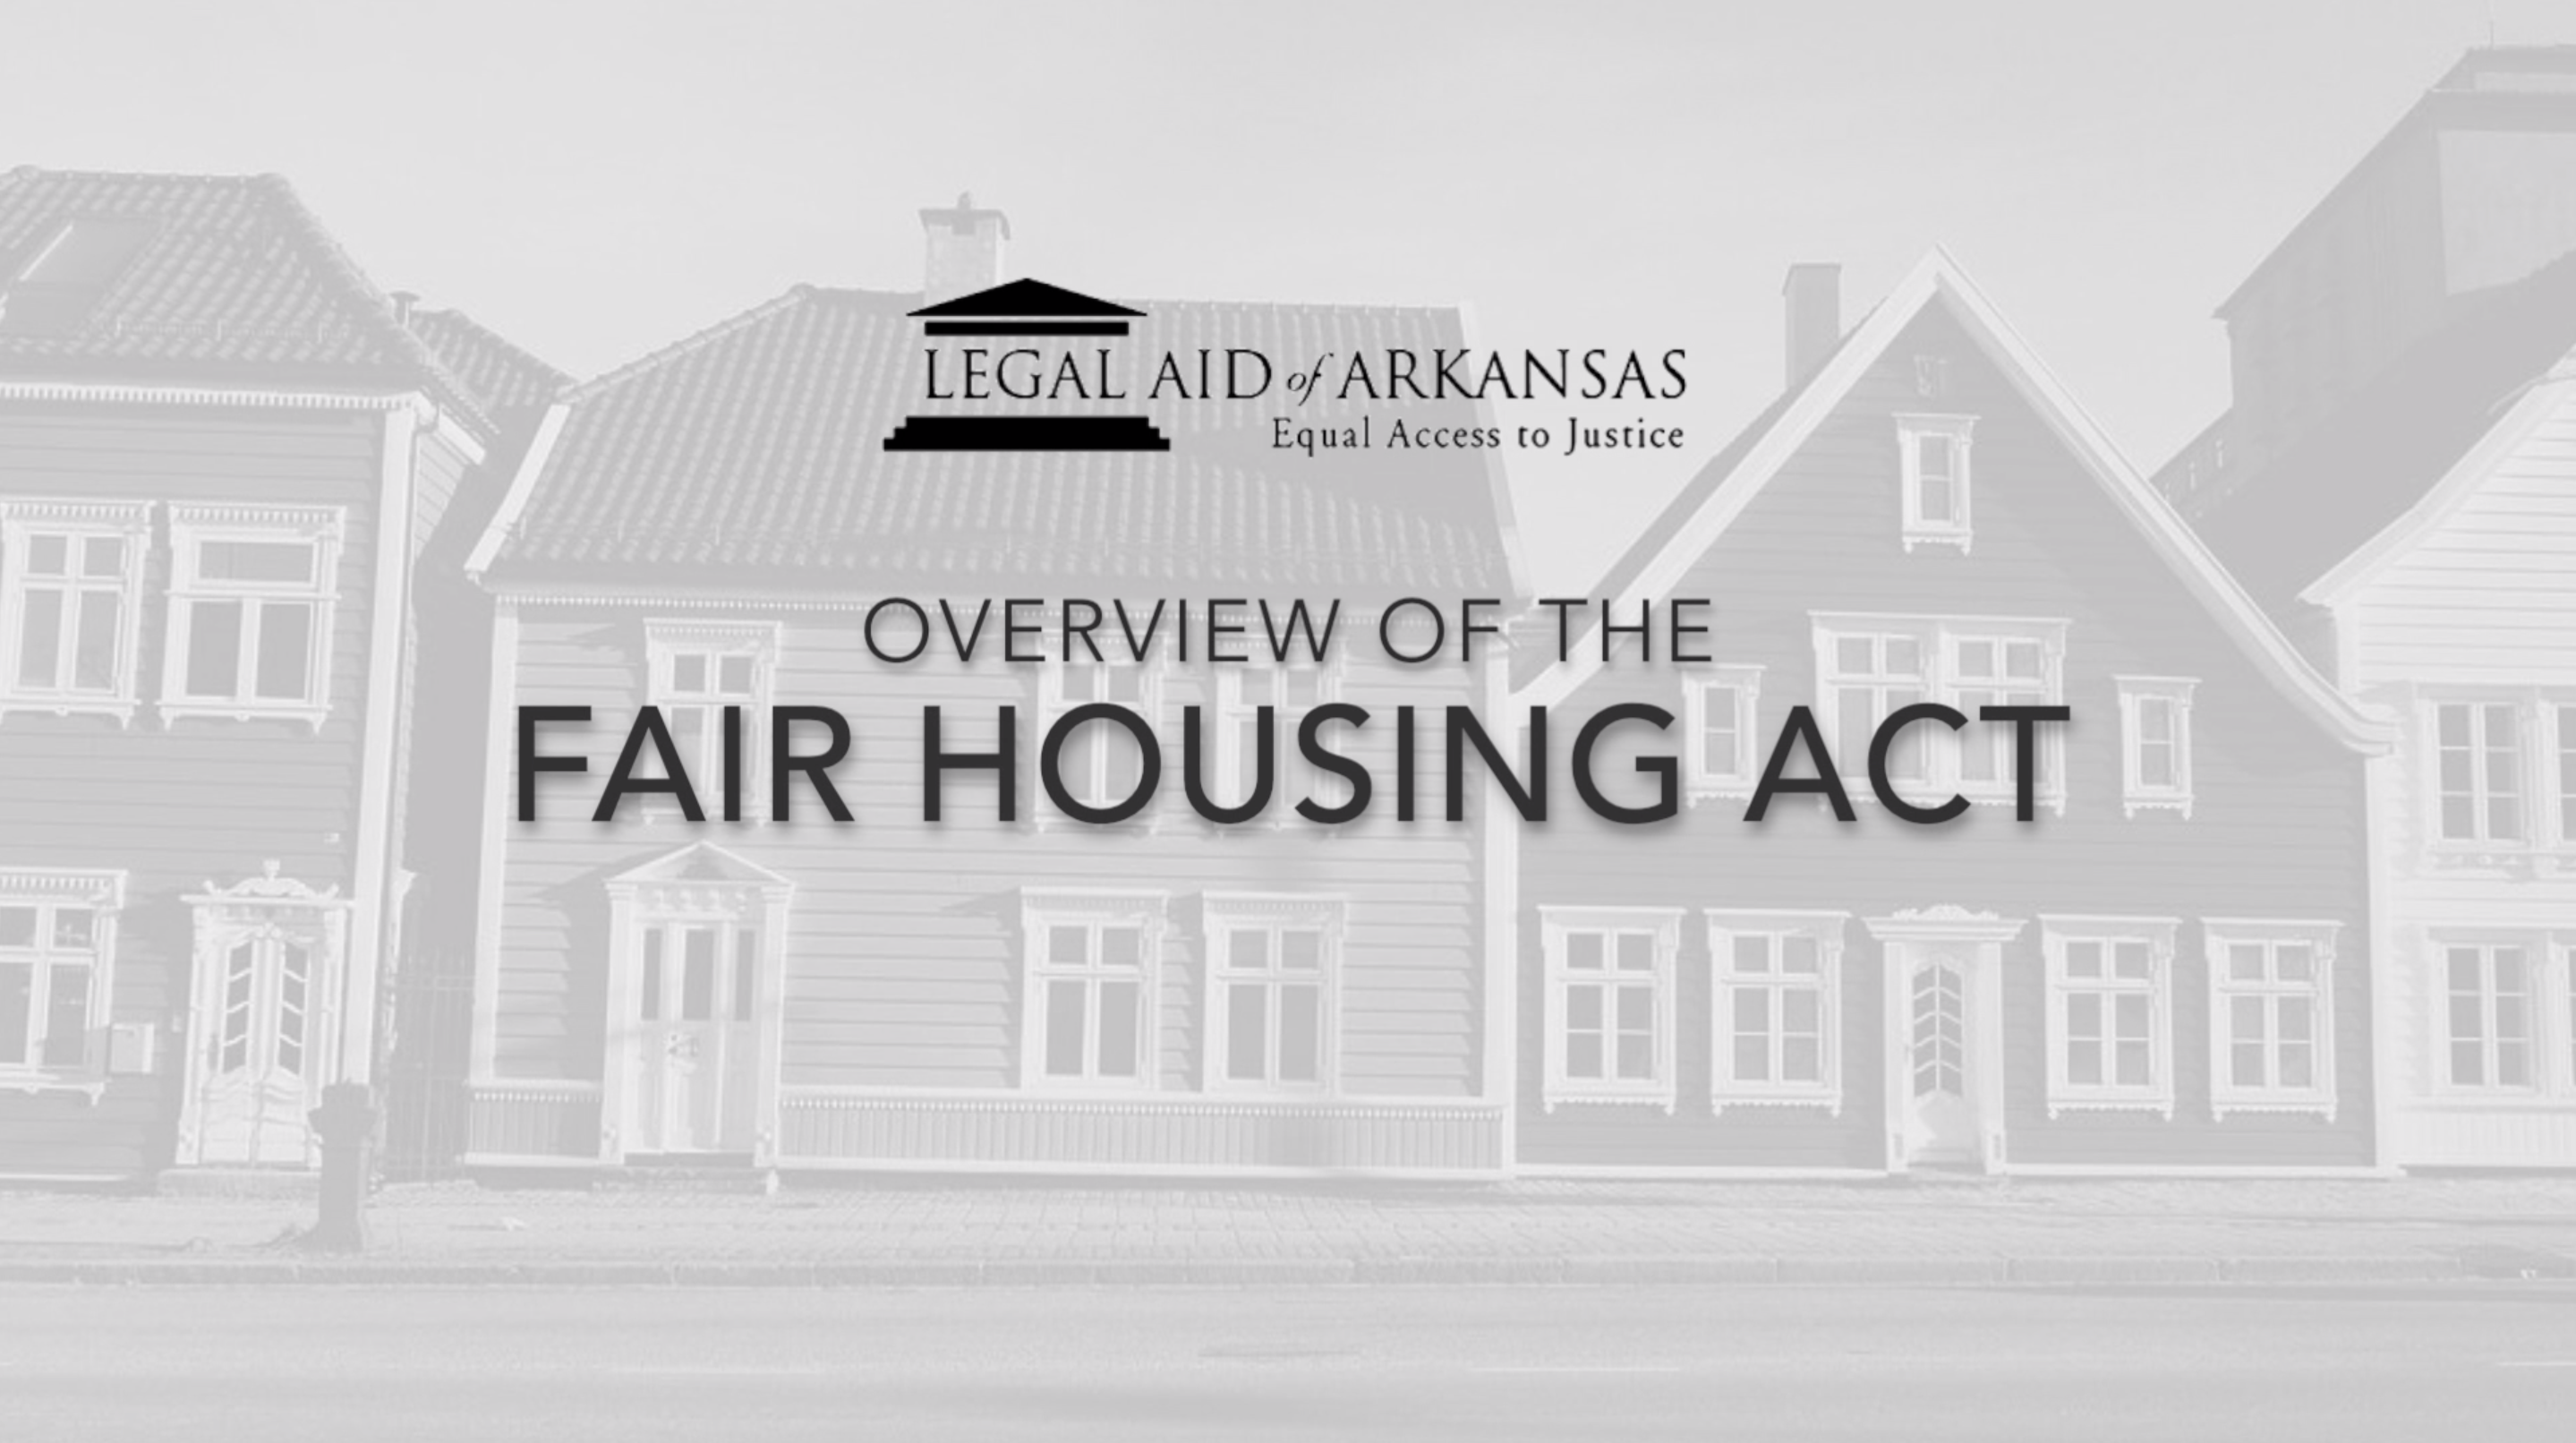 VIDEO - Overview of the Fair Housing Act